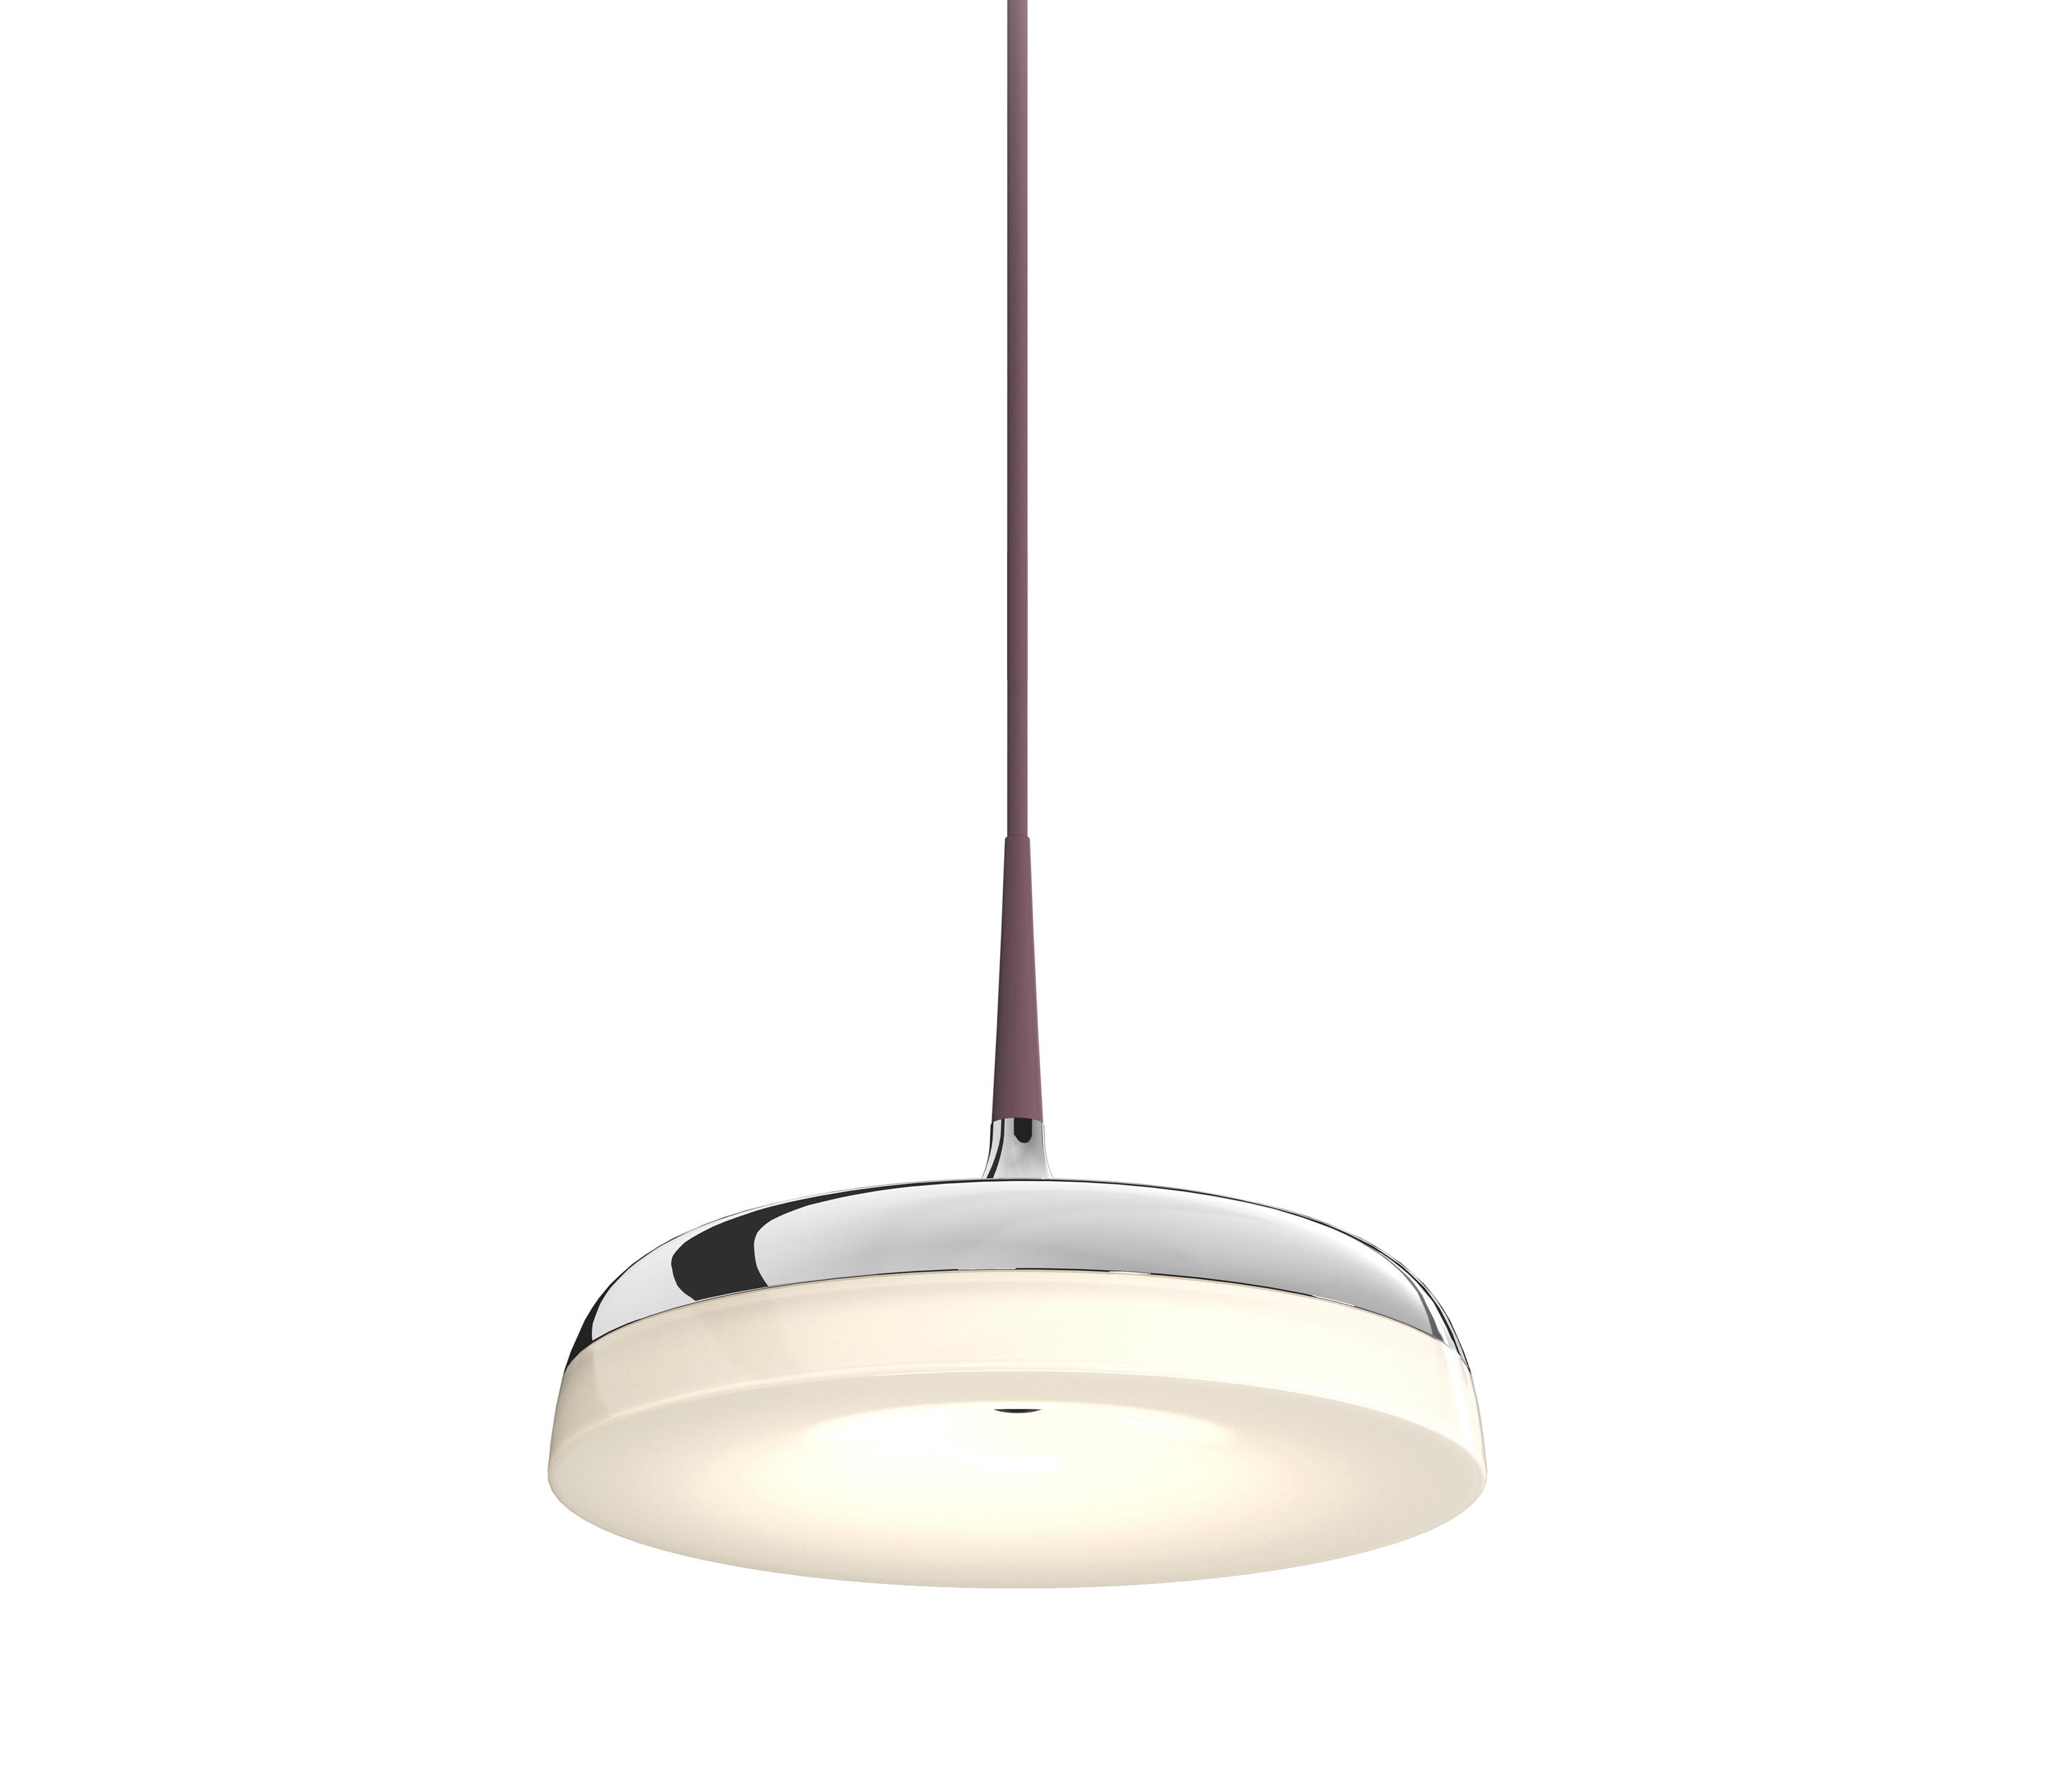 Tobias Grau general lighting from tobias grau architonic